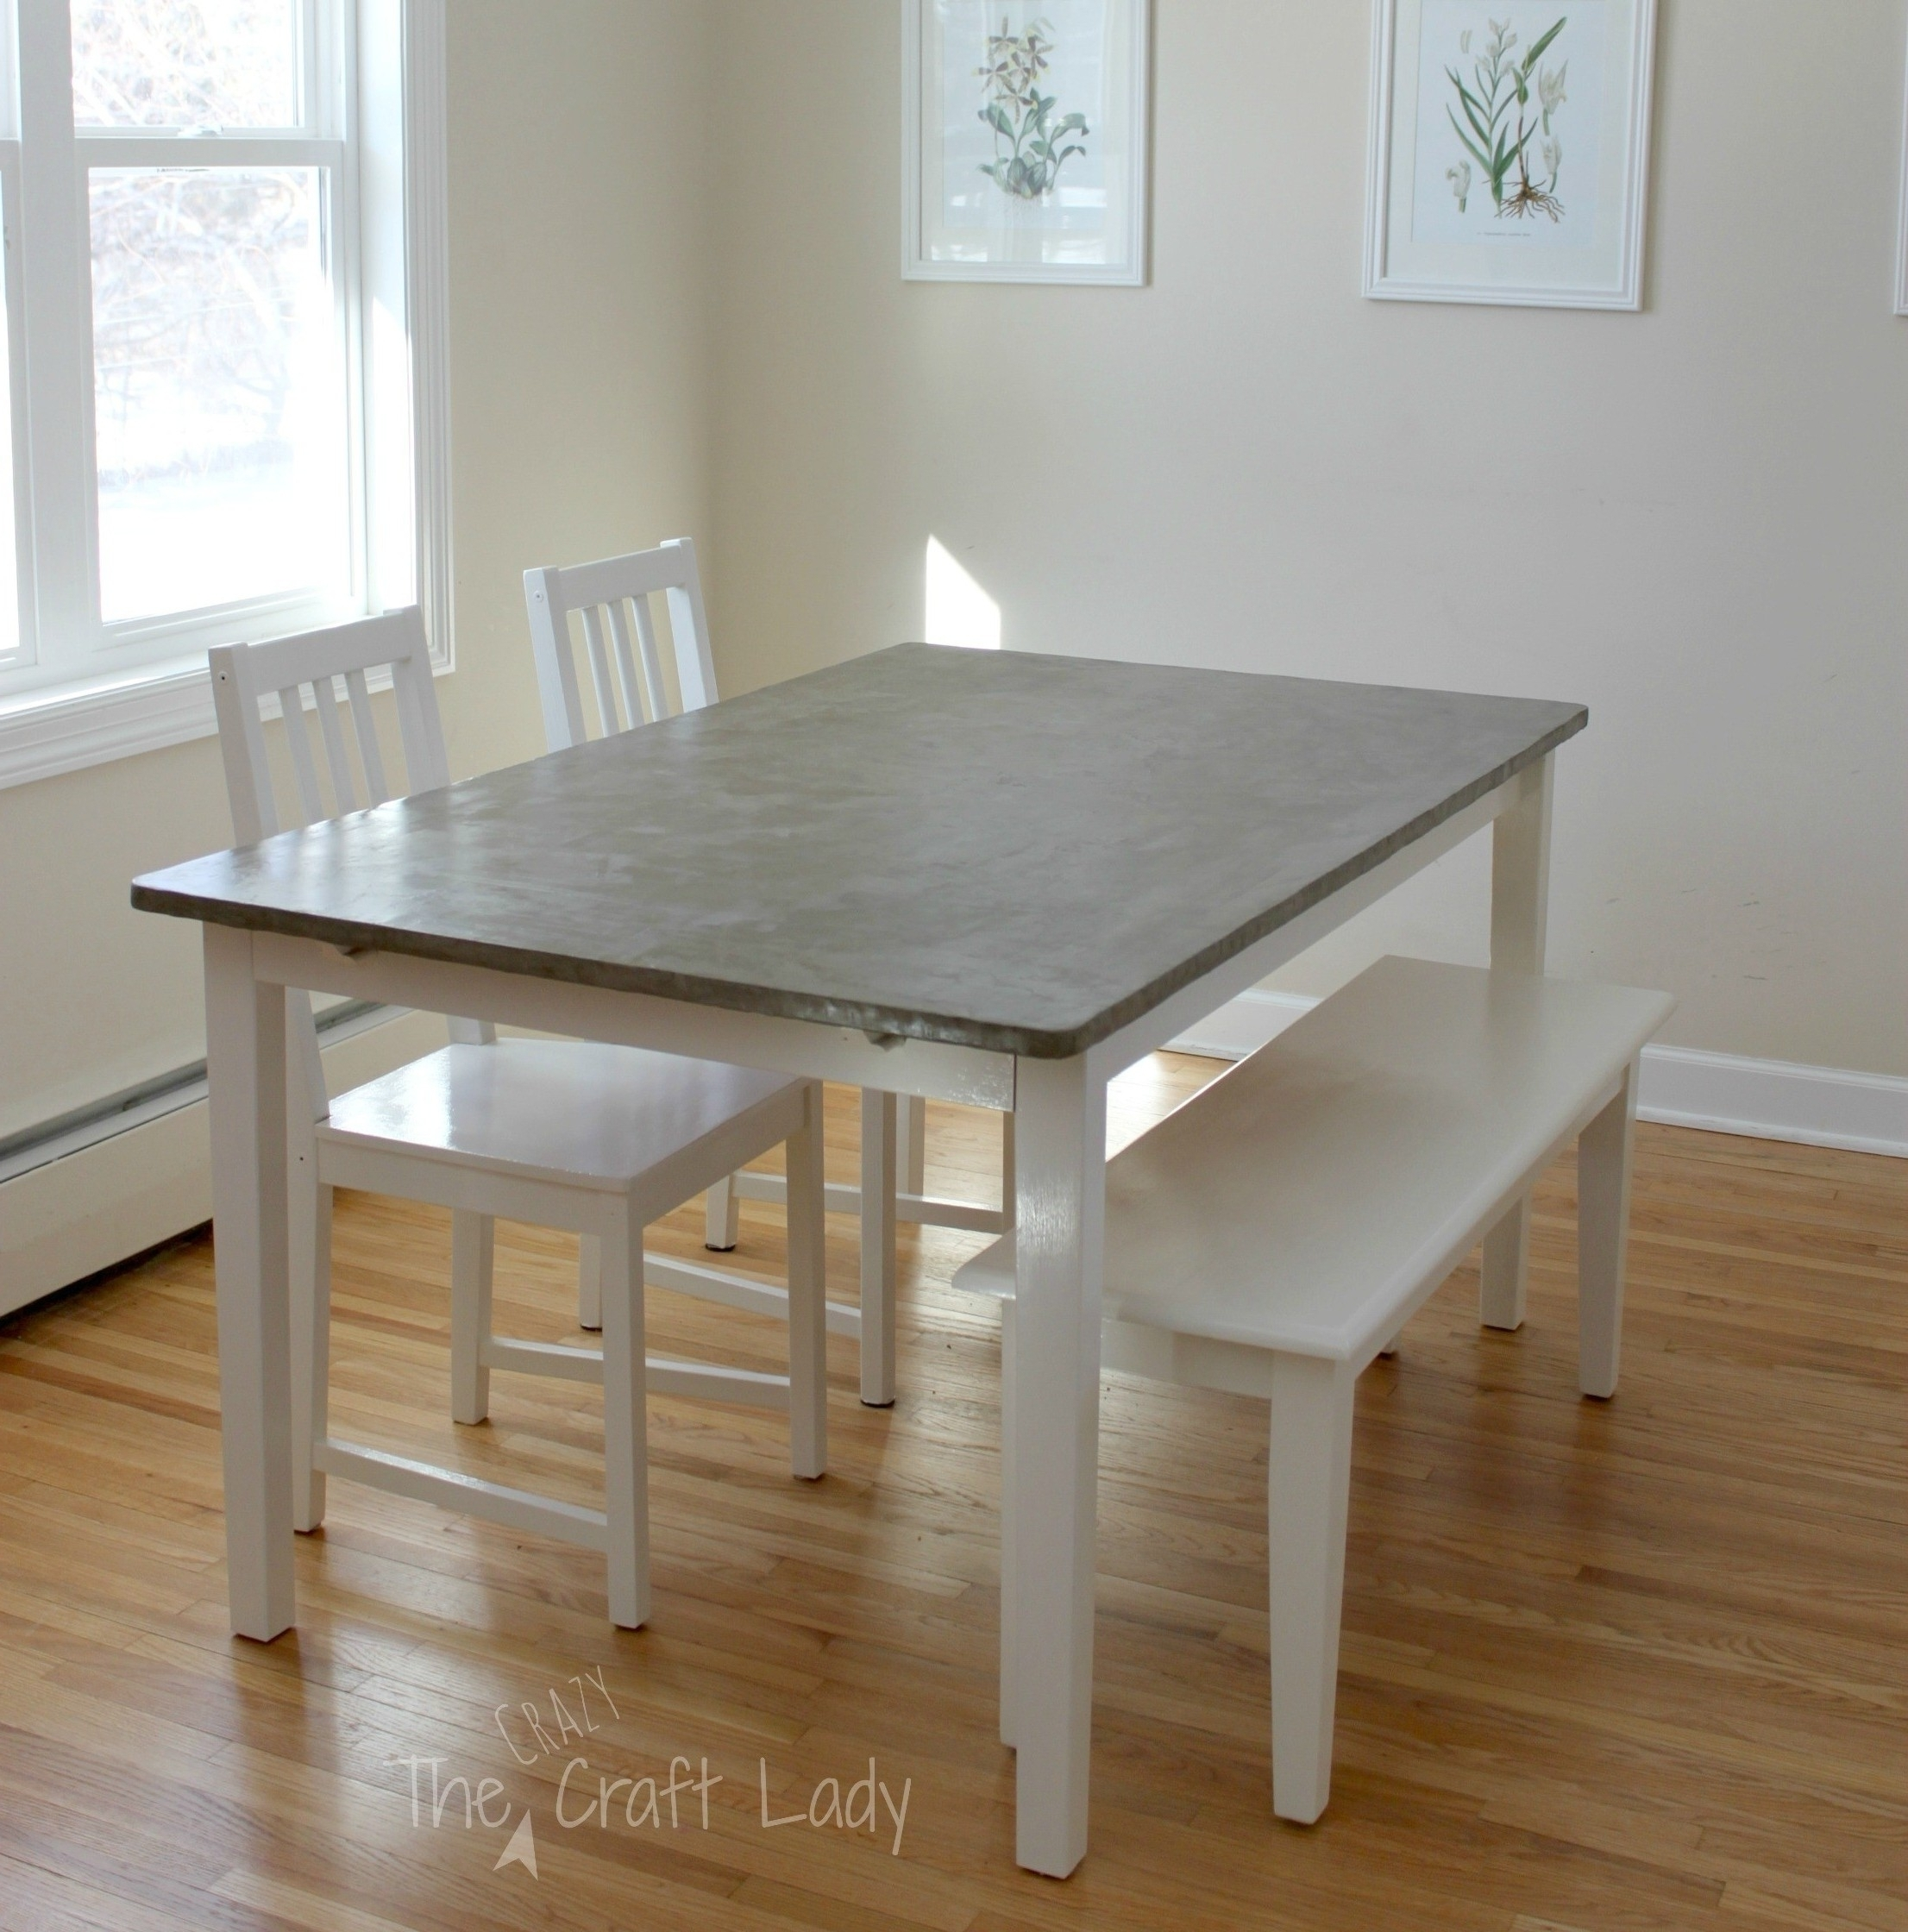 2018 Oval Folding Dining Tables Inside The 29 Awesome Foldable Dining Room Table – Welovedandelion (Gallery 22 of 25)